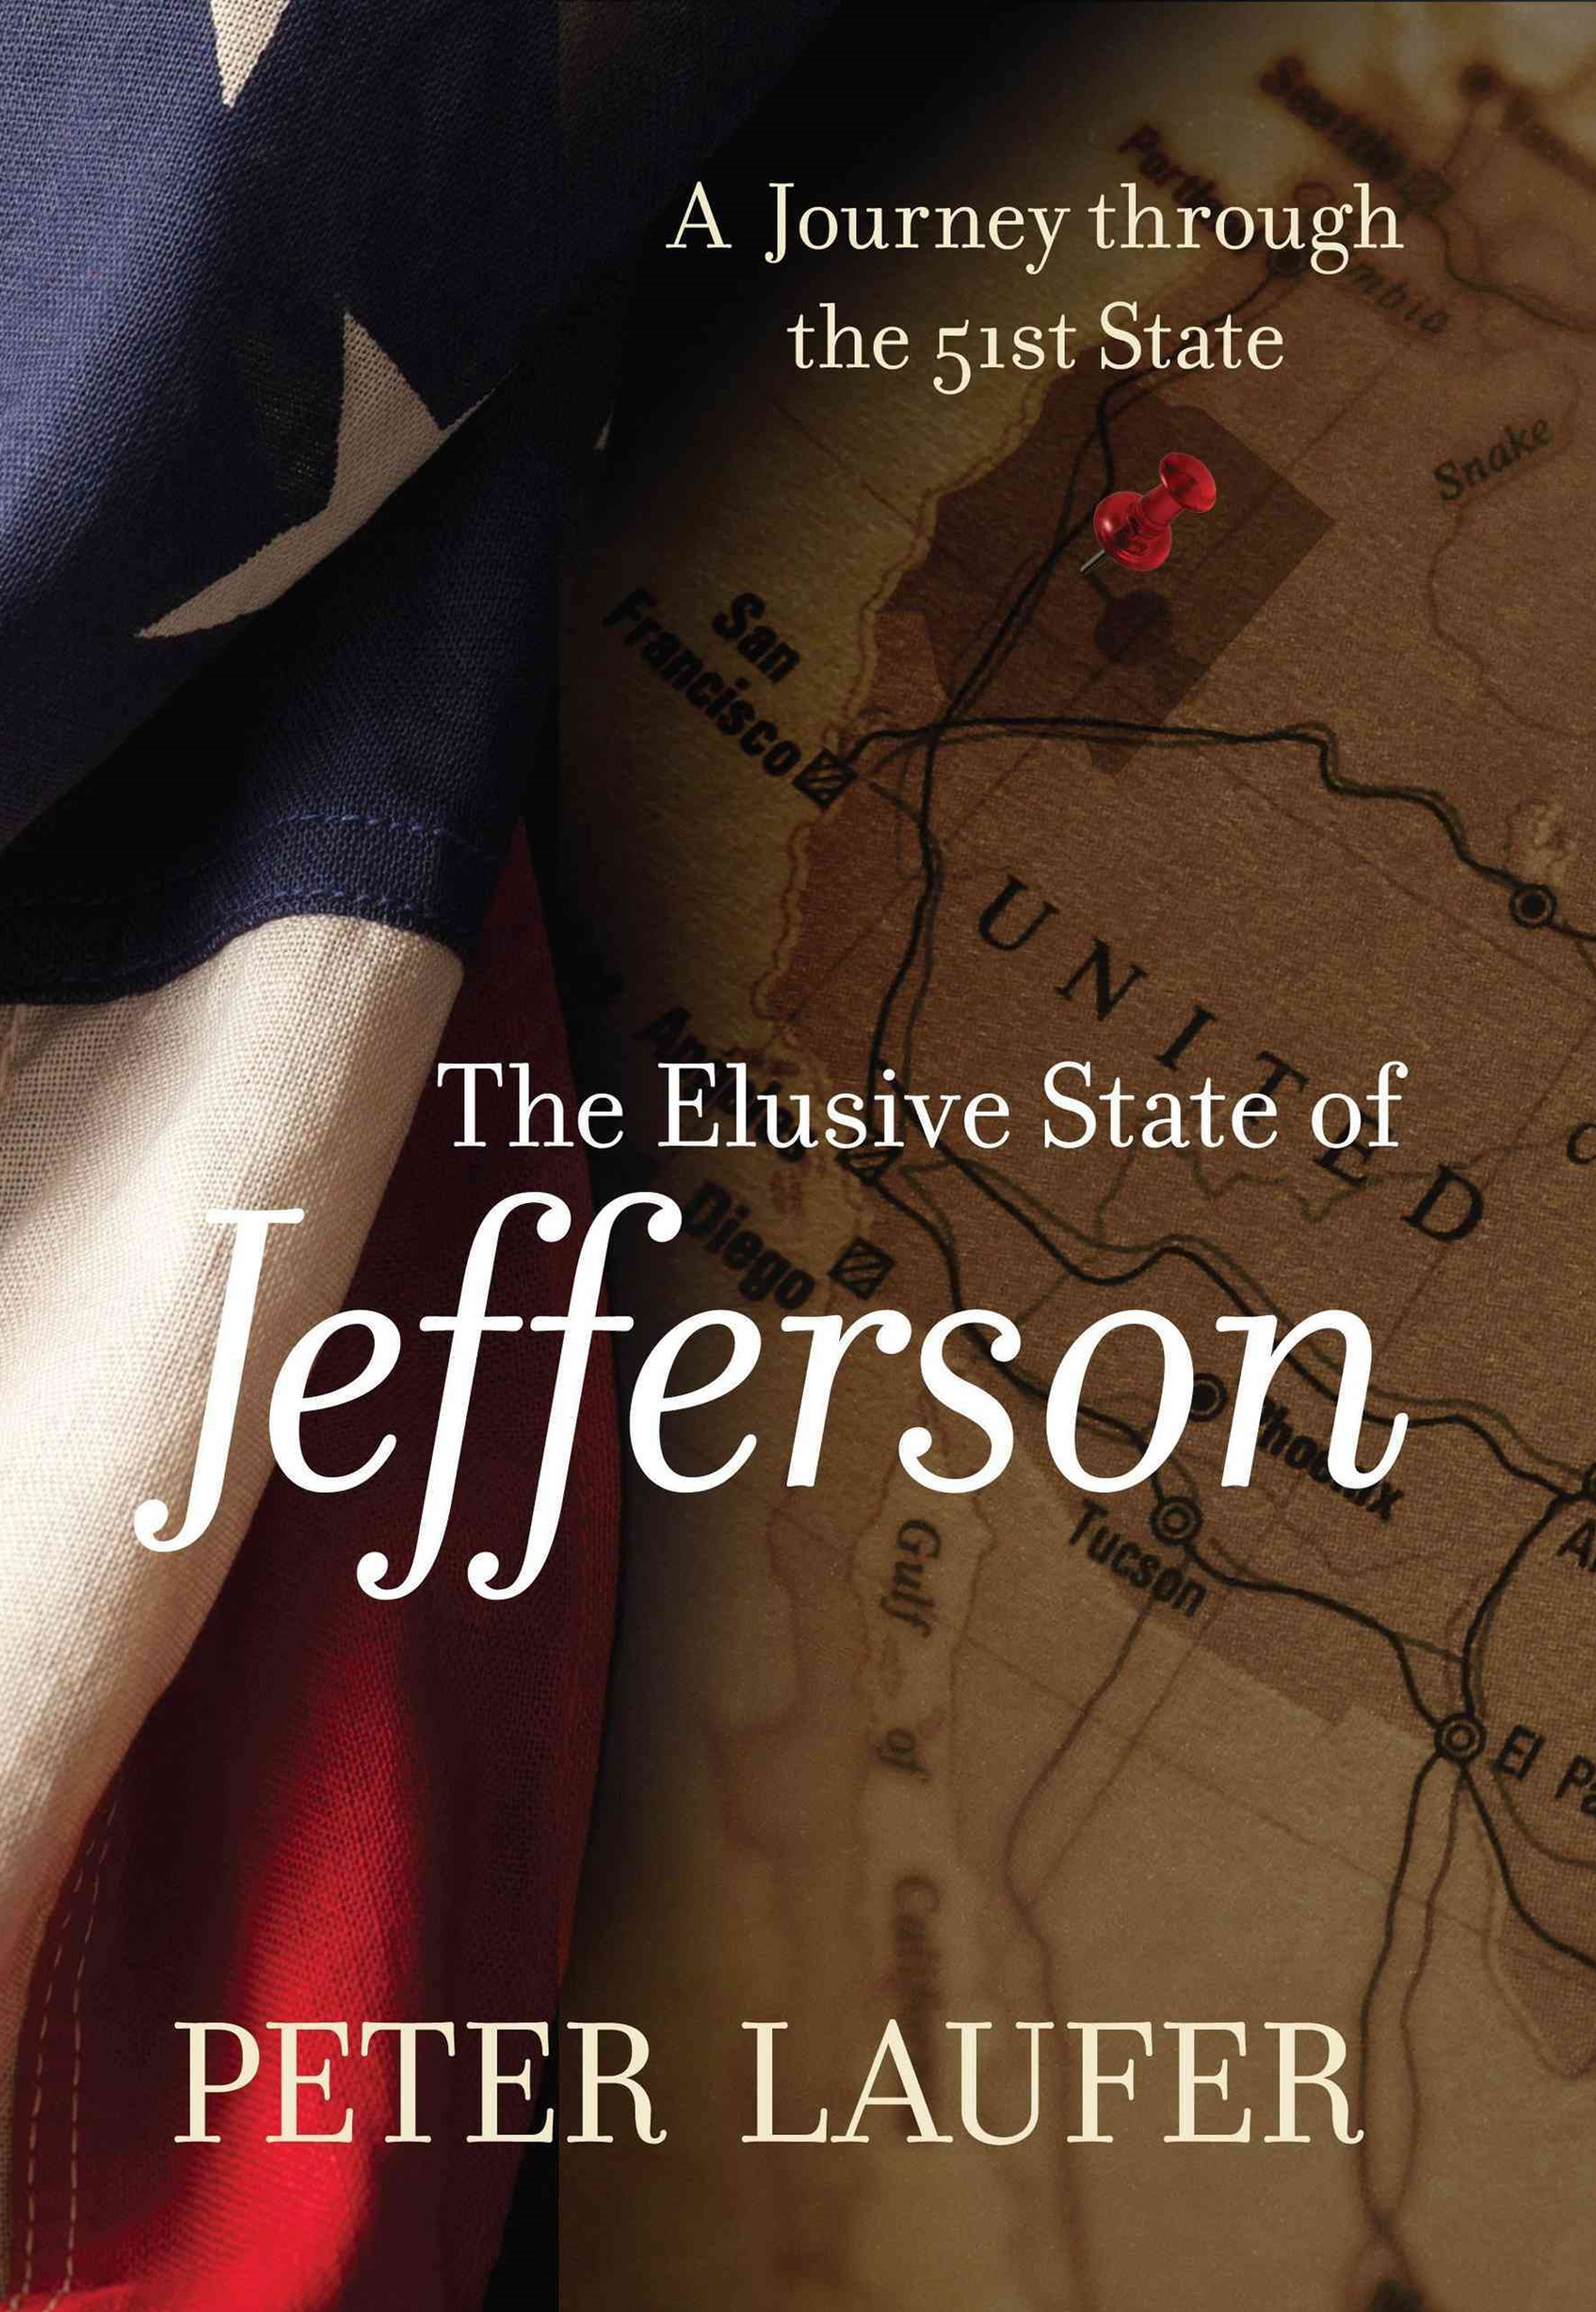 The Elusive State of Jefferson